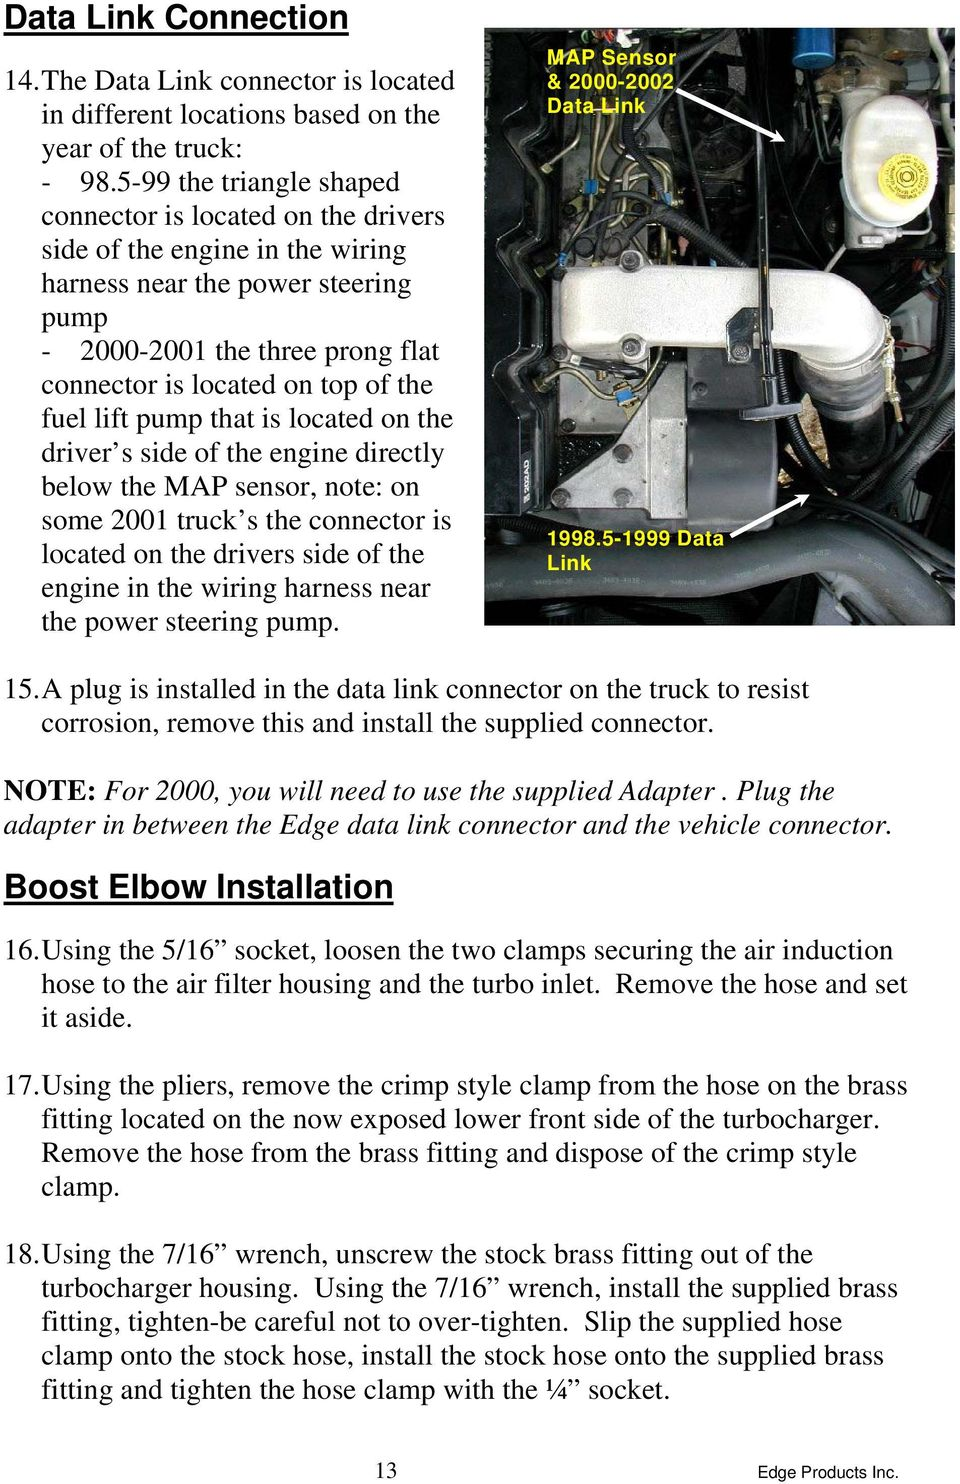 Dodge cummins 59l edge comp module installation instructions fuel lift pump that is located on the driver s side of the engine directly below publicscrutiny Choice Image